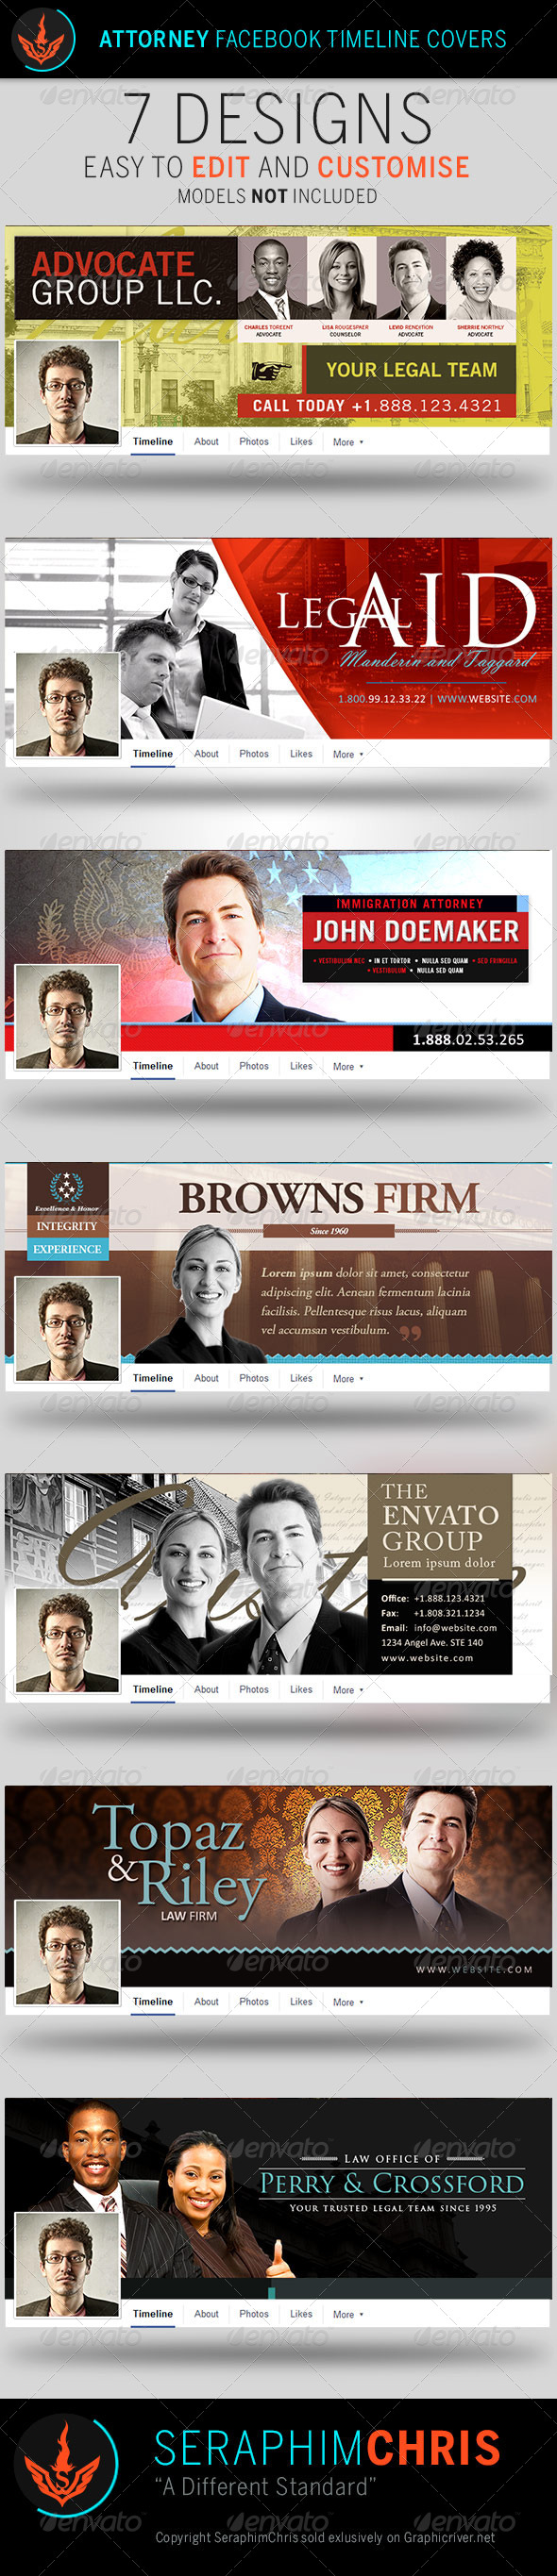 GraphicRiver Attorney Facebook Timeline Cover Templates 7974427